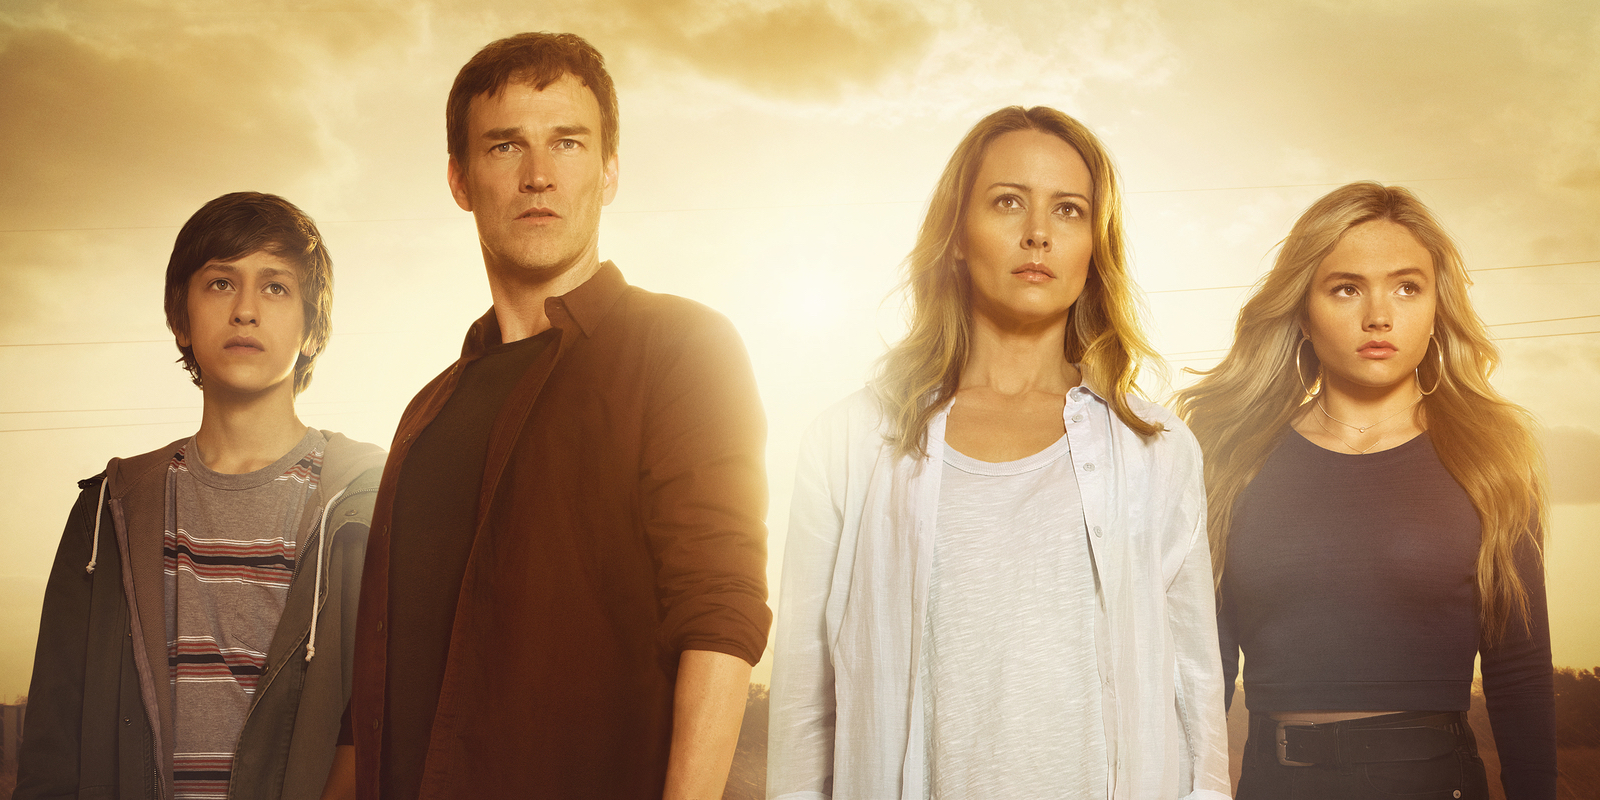 Percy-Hynes-White-Stephen-Moyer-Amy-Acker-and-Natalie-Alyn-Lind-in-The-Gifted-FOX